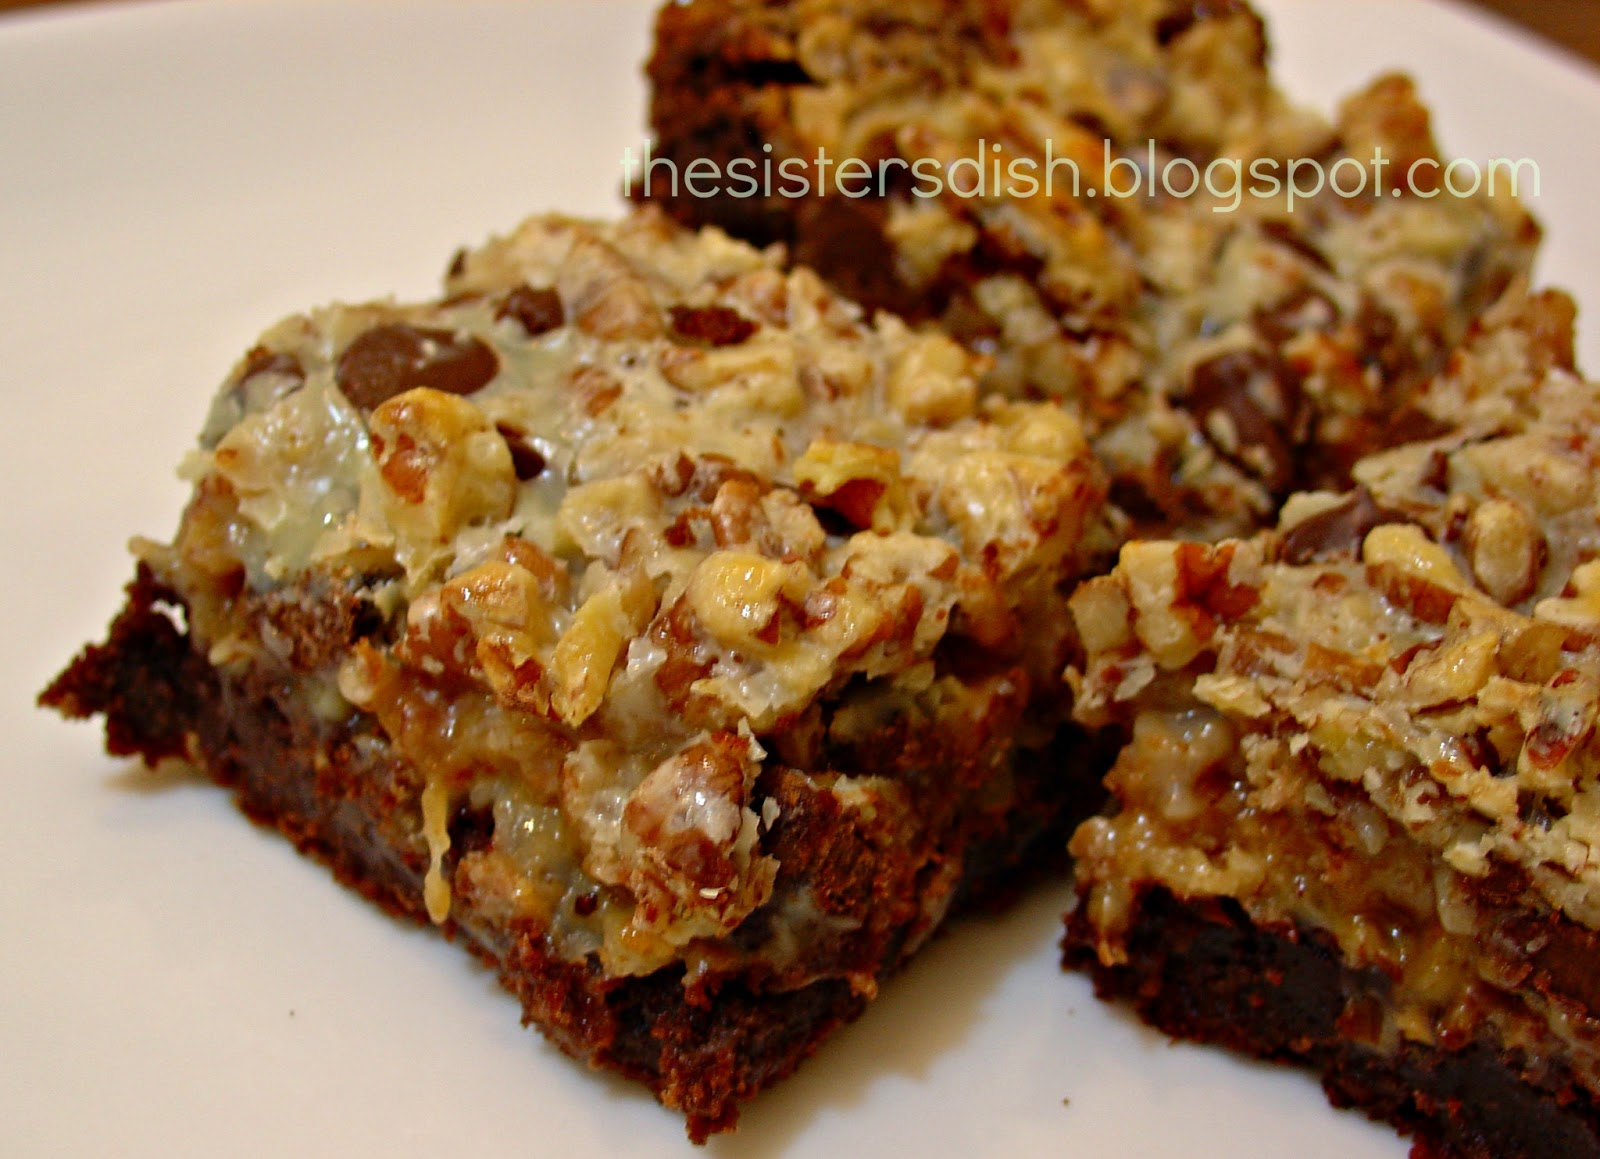 The Sisters Dish: Six-Layer Brownie Bars